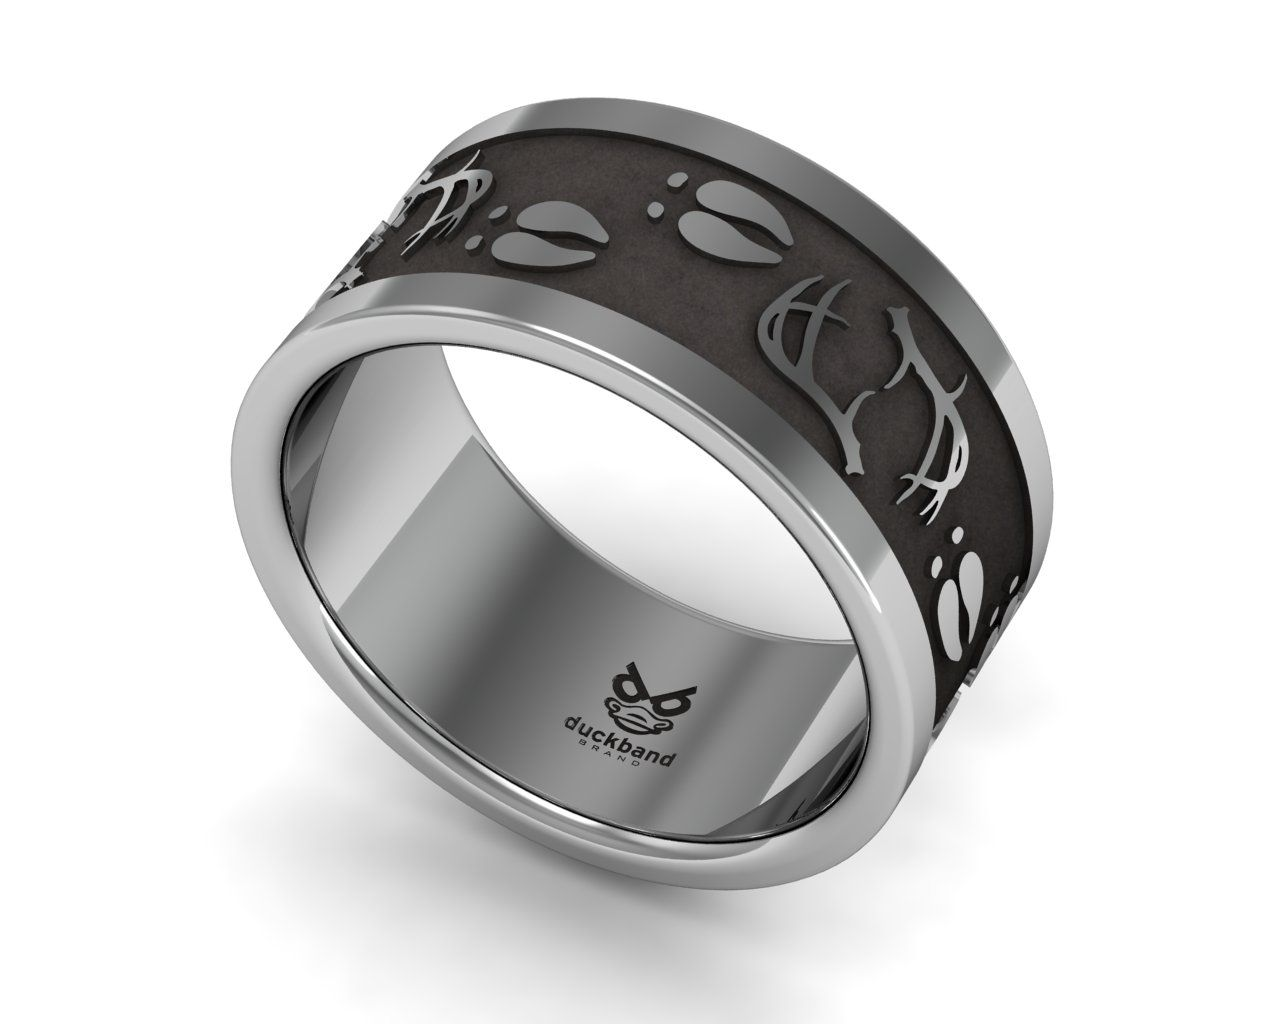 gorgeous hunting / archery jewelry on this site. wish there was a